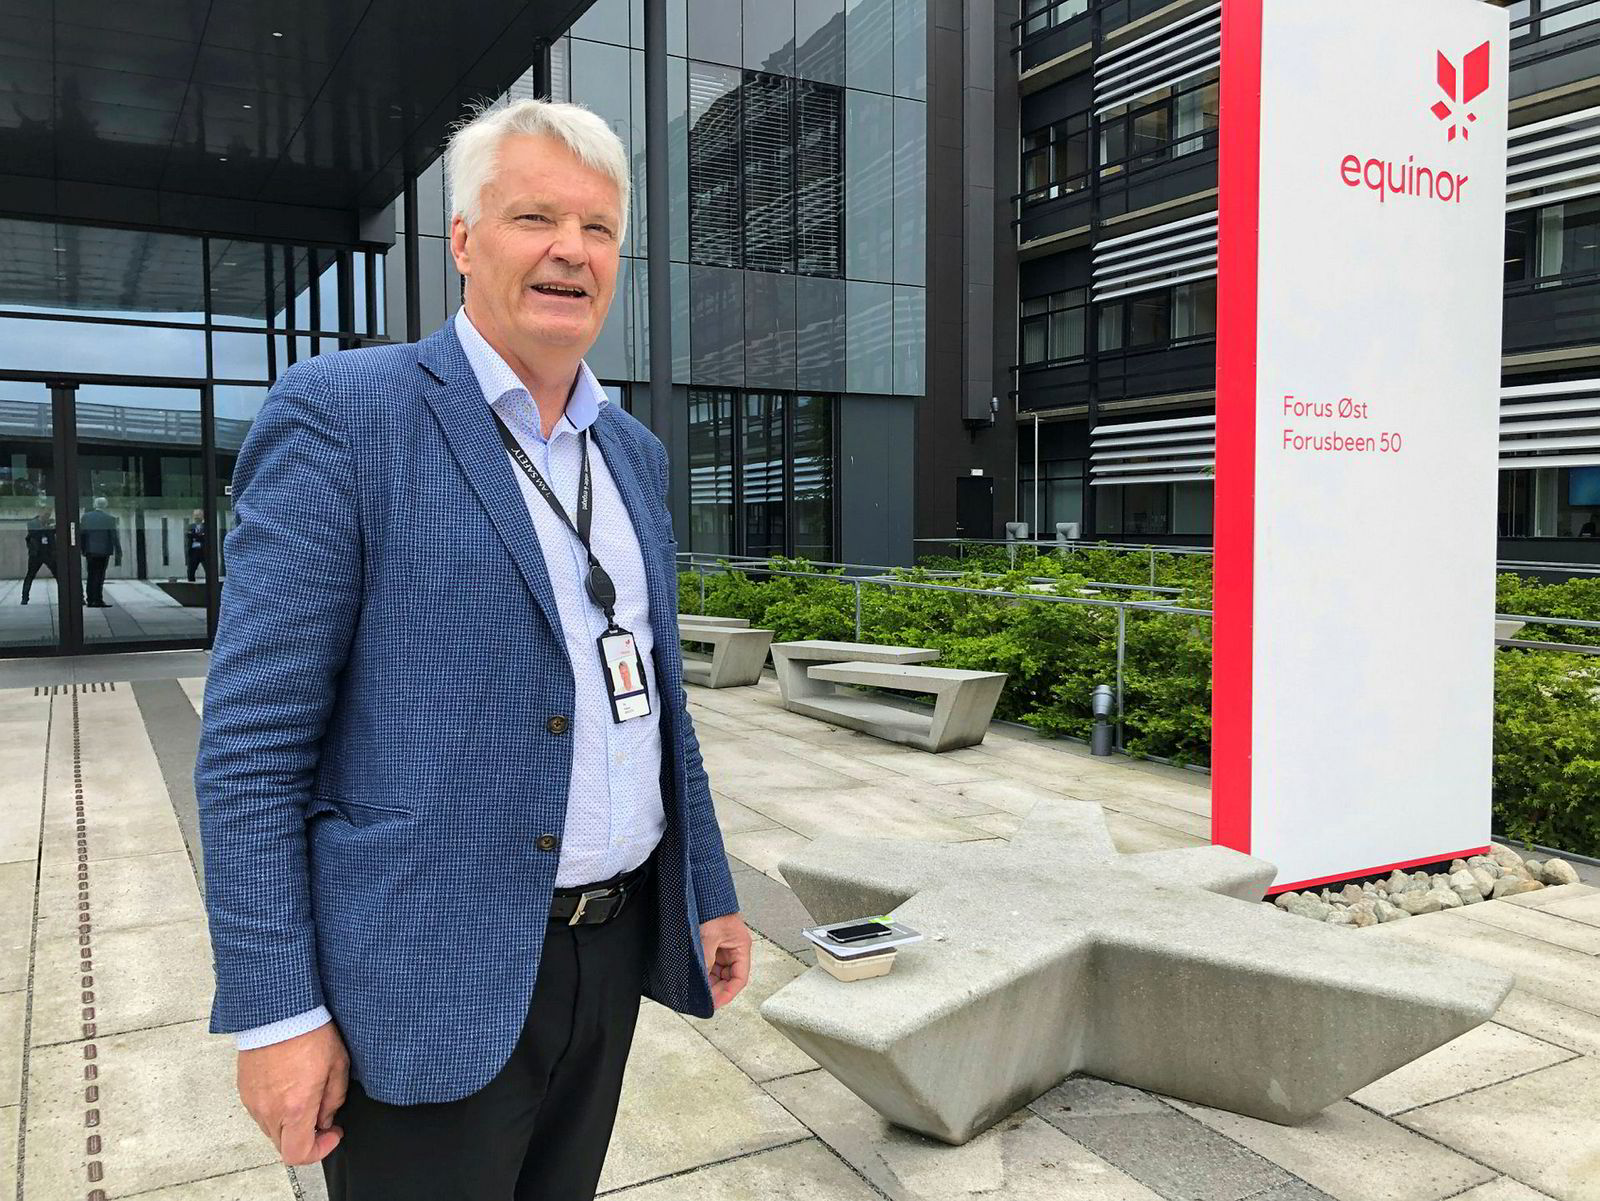 Per Haaland is Equinor's director of efficiency and equipment management. He now asks the platform industry to create a completely new, automated and lighter equipment with half the team.